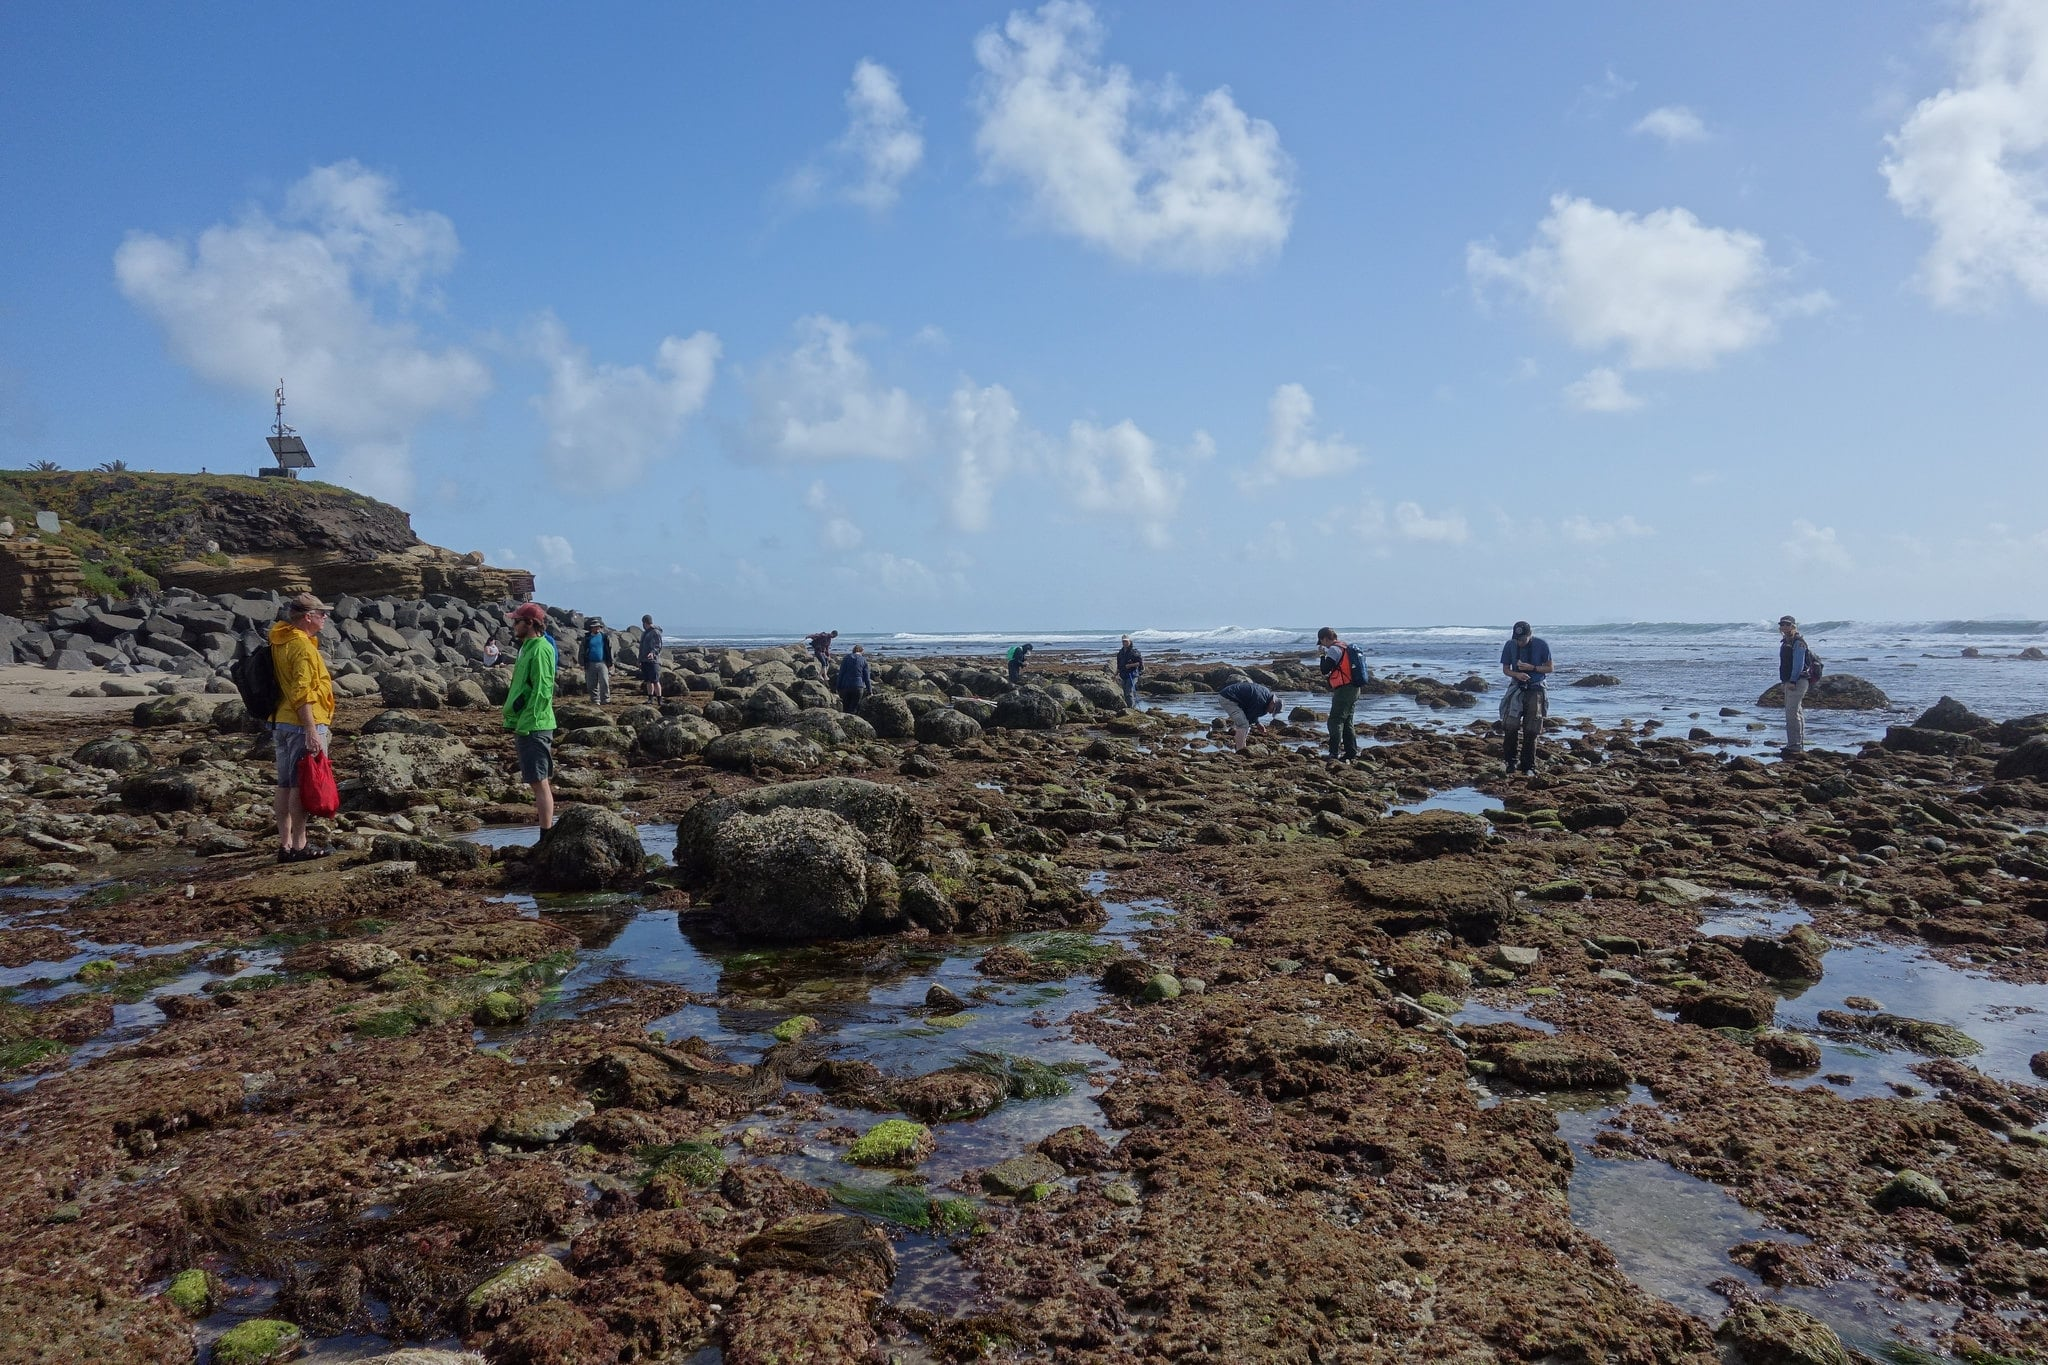 A group of people explores the Cabrillo tide pools at low tide.